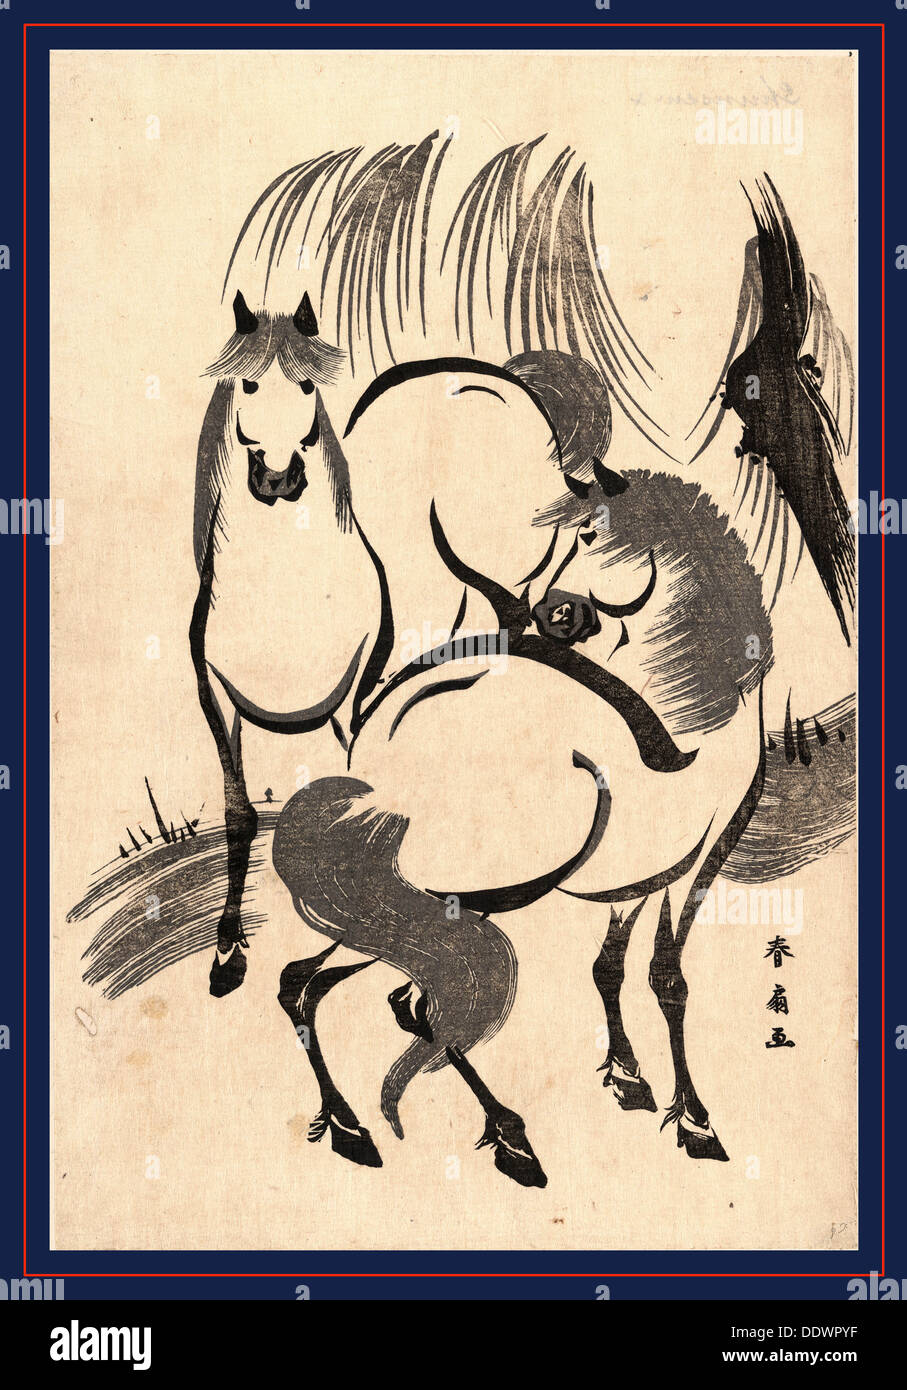 Ryuka no uma, Horses under a willow tree. [between 1804 and 1818], 1 print : woodcut ; 34.5 x 23.2 cm., Print shows two - Stock Image